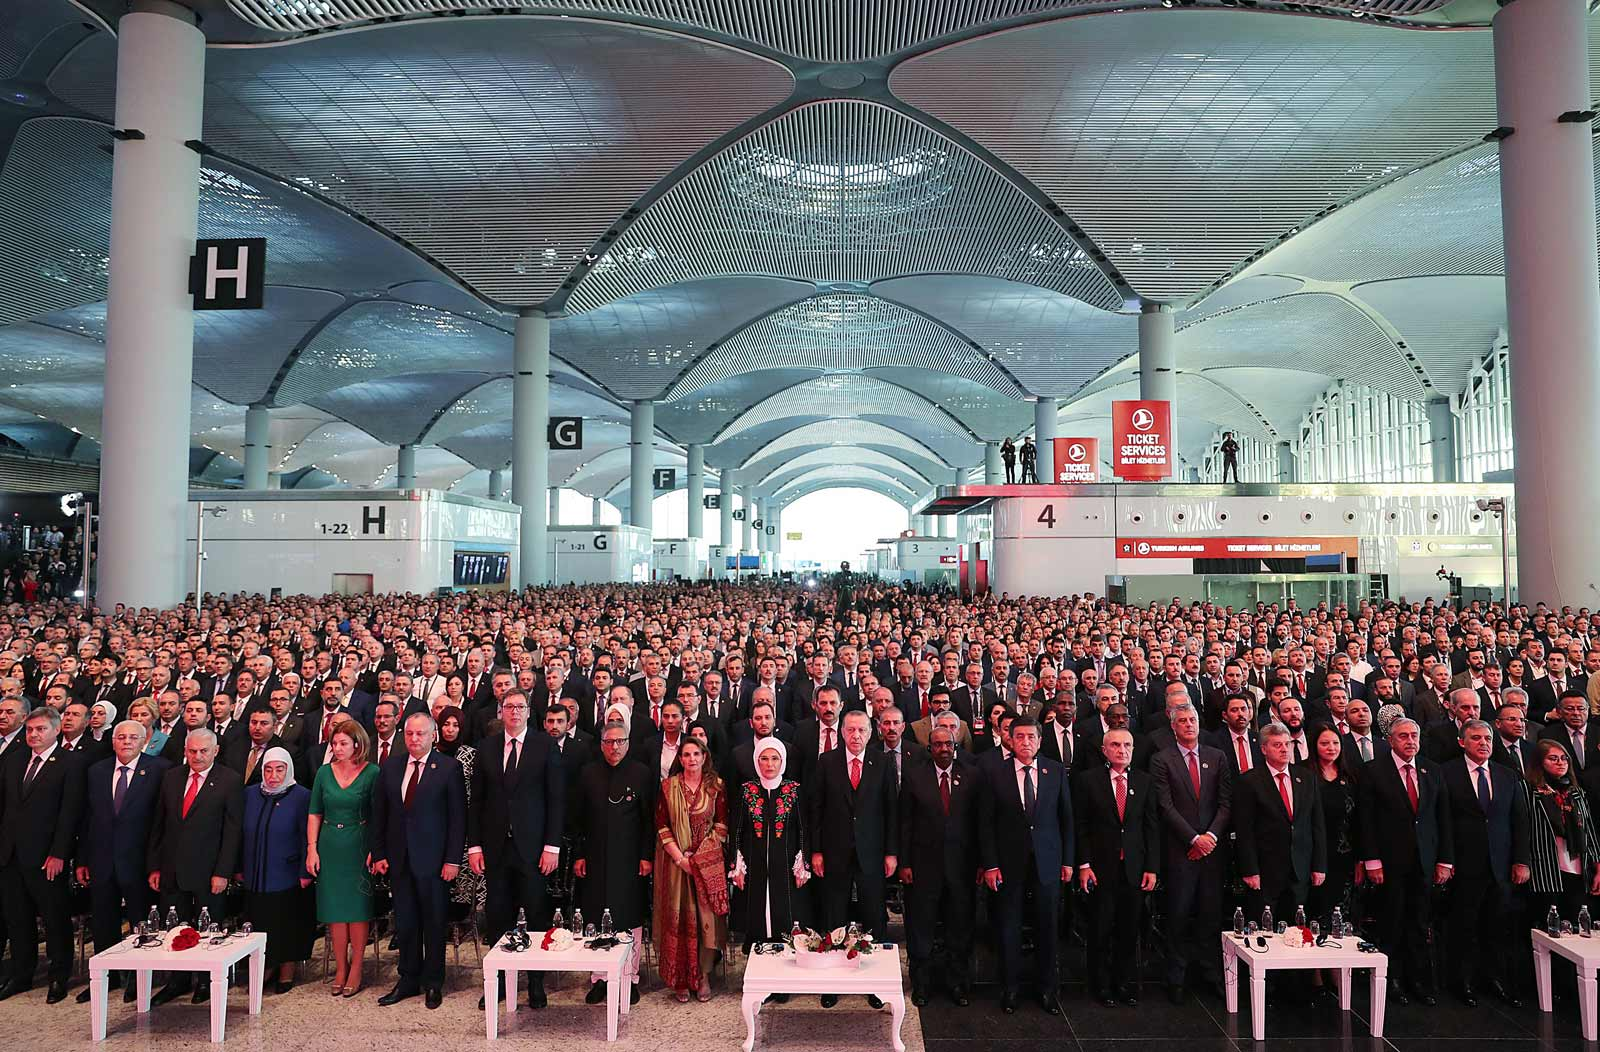 Turkish President Recep Tayyip Erdoğan with his wife Emine Erdoğan, and the presidents of Serbia, Moldova, Kyrgyzstan, Sudan, and Kosovo at the opening ceremony of new airport in Istanbul, October 29, 2018